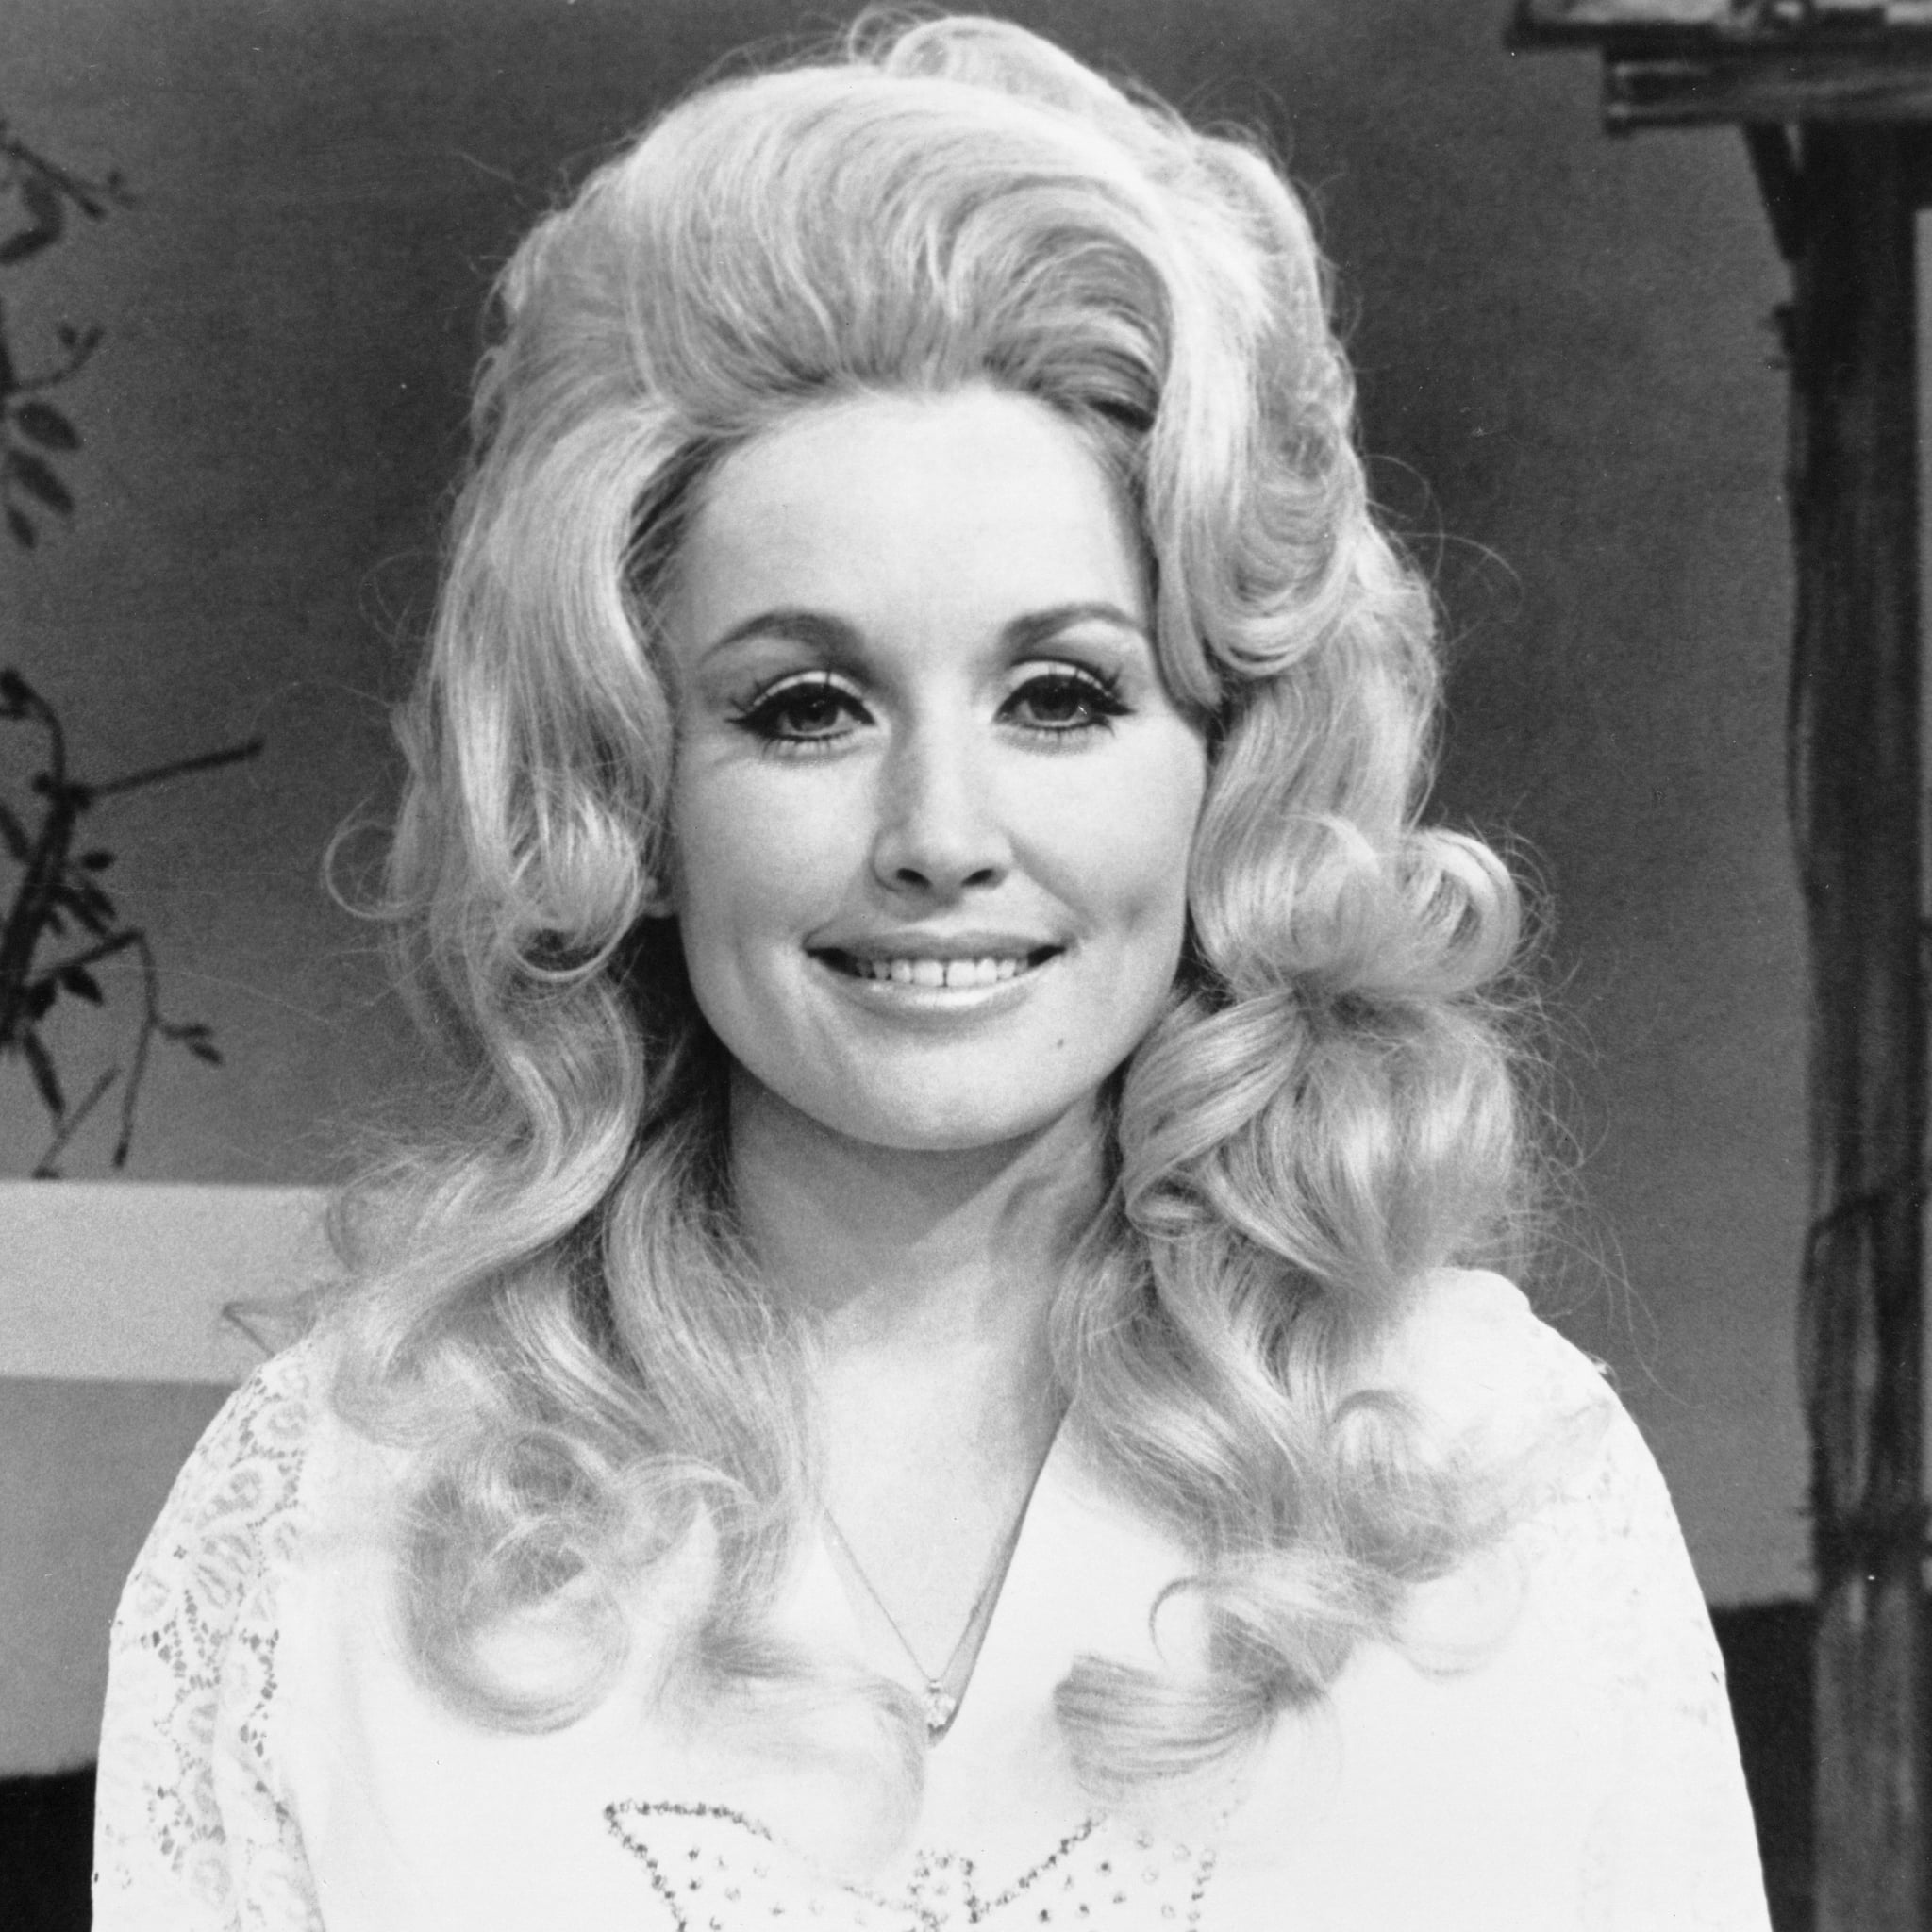 Discussion on this topic: Betty Jaynes (actress), viola-allen/